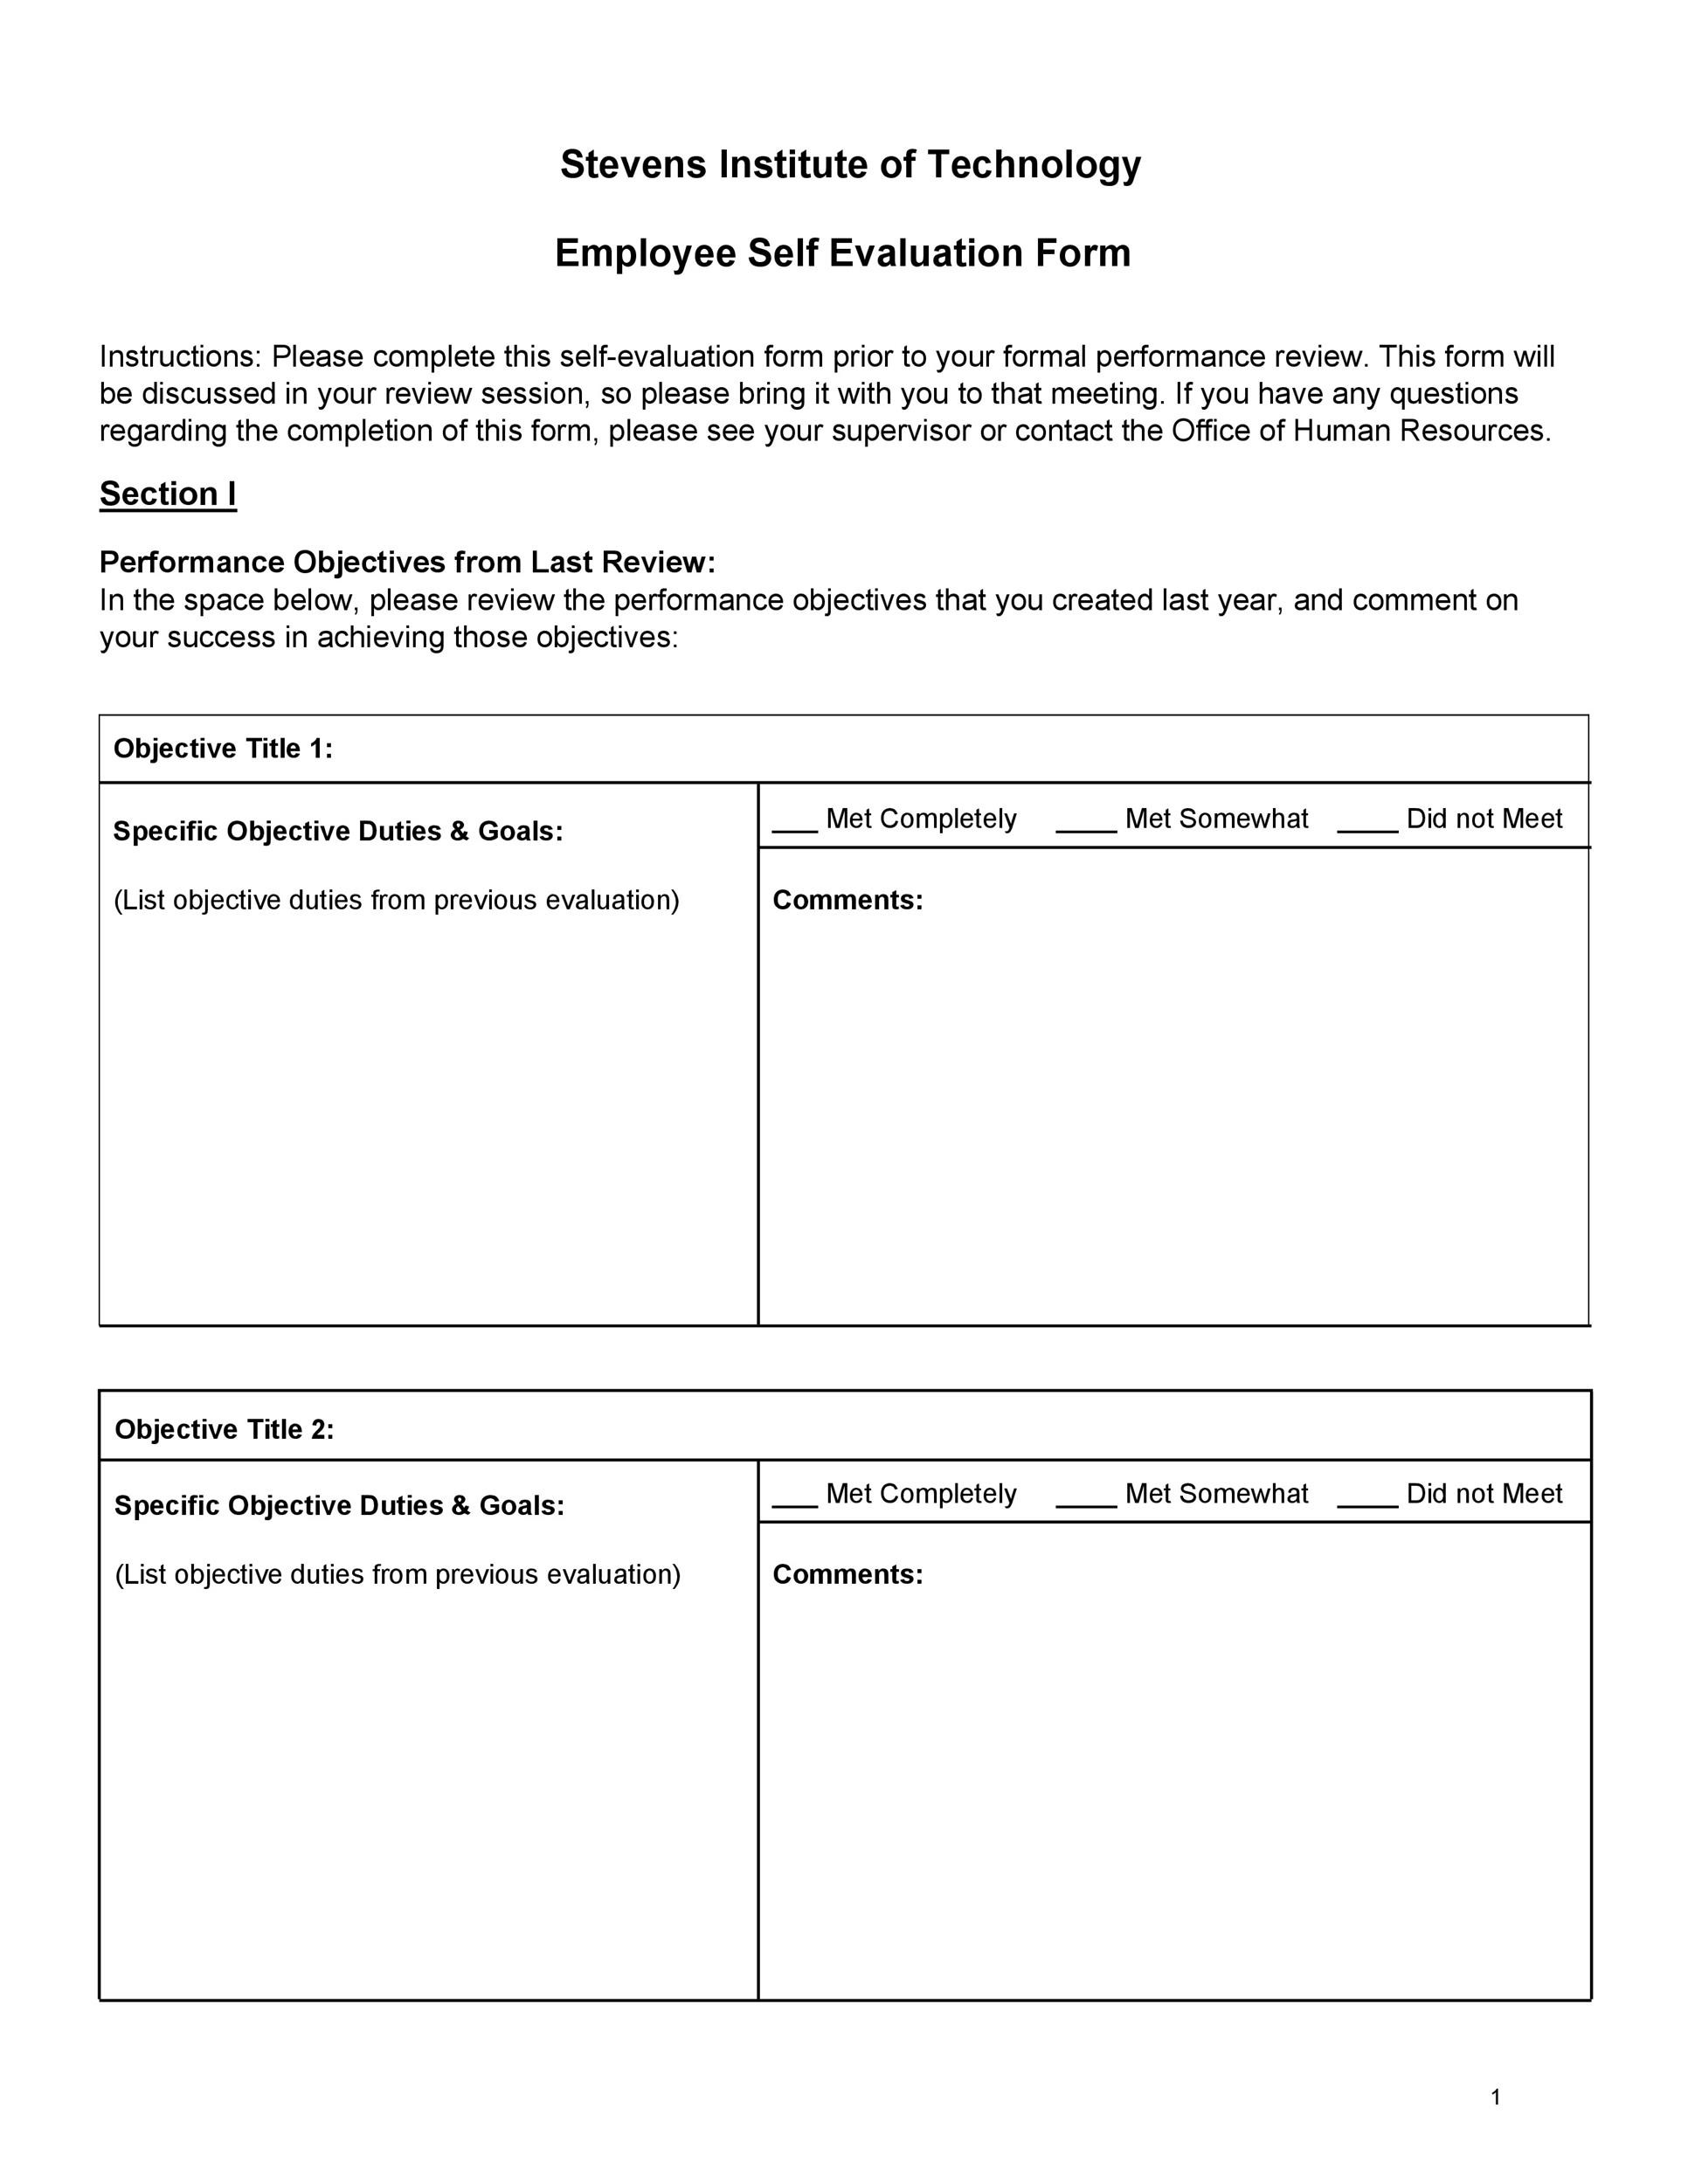 50+ Self Evaluation Examples, Forms & Questions - Template Lab